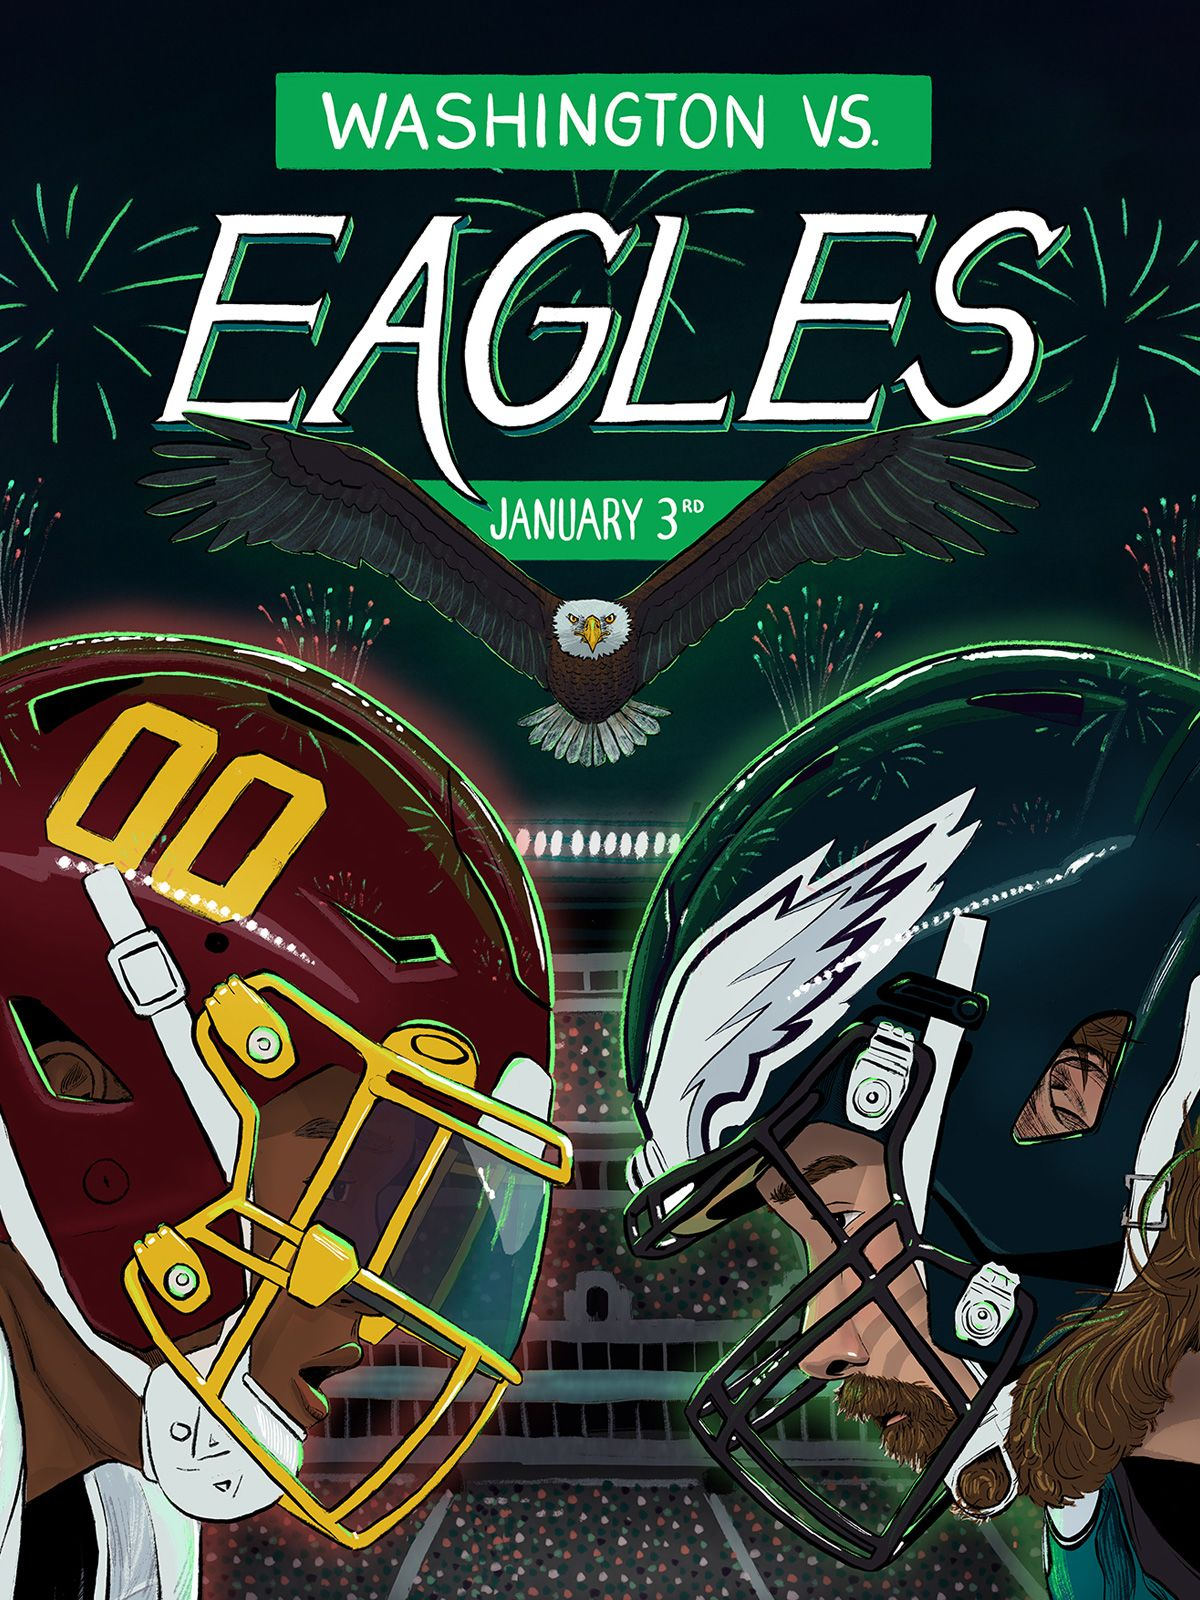 Week 17: Washington vs. Eagles